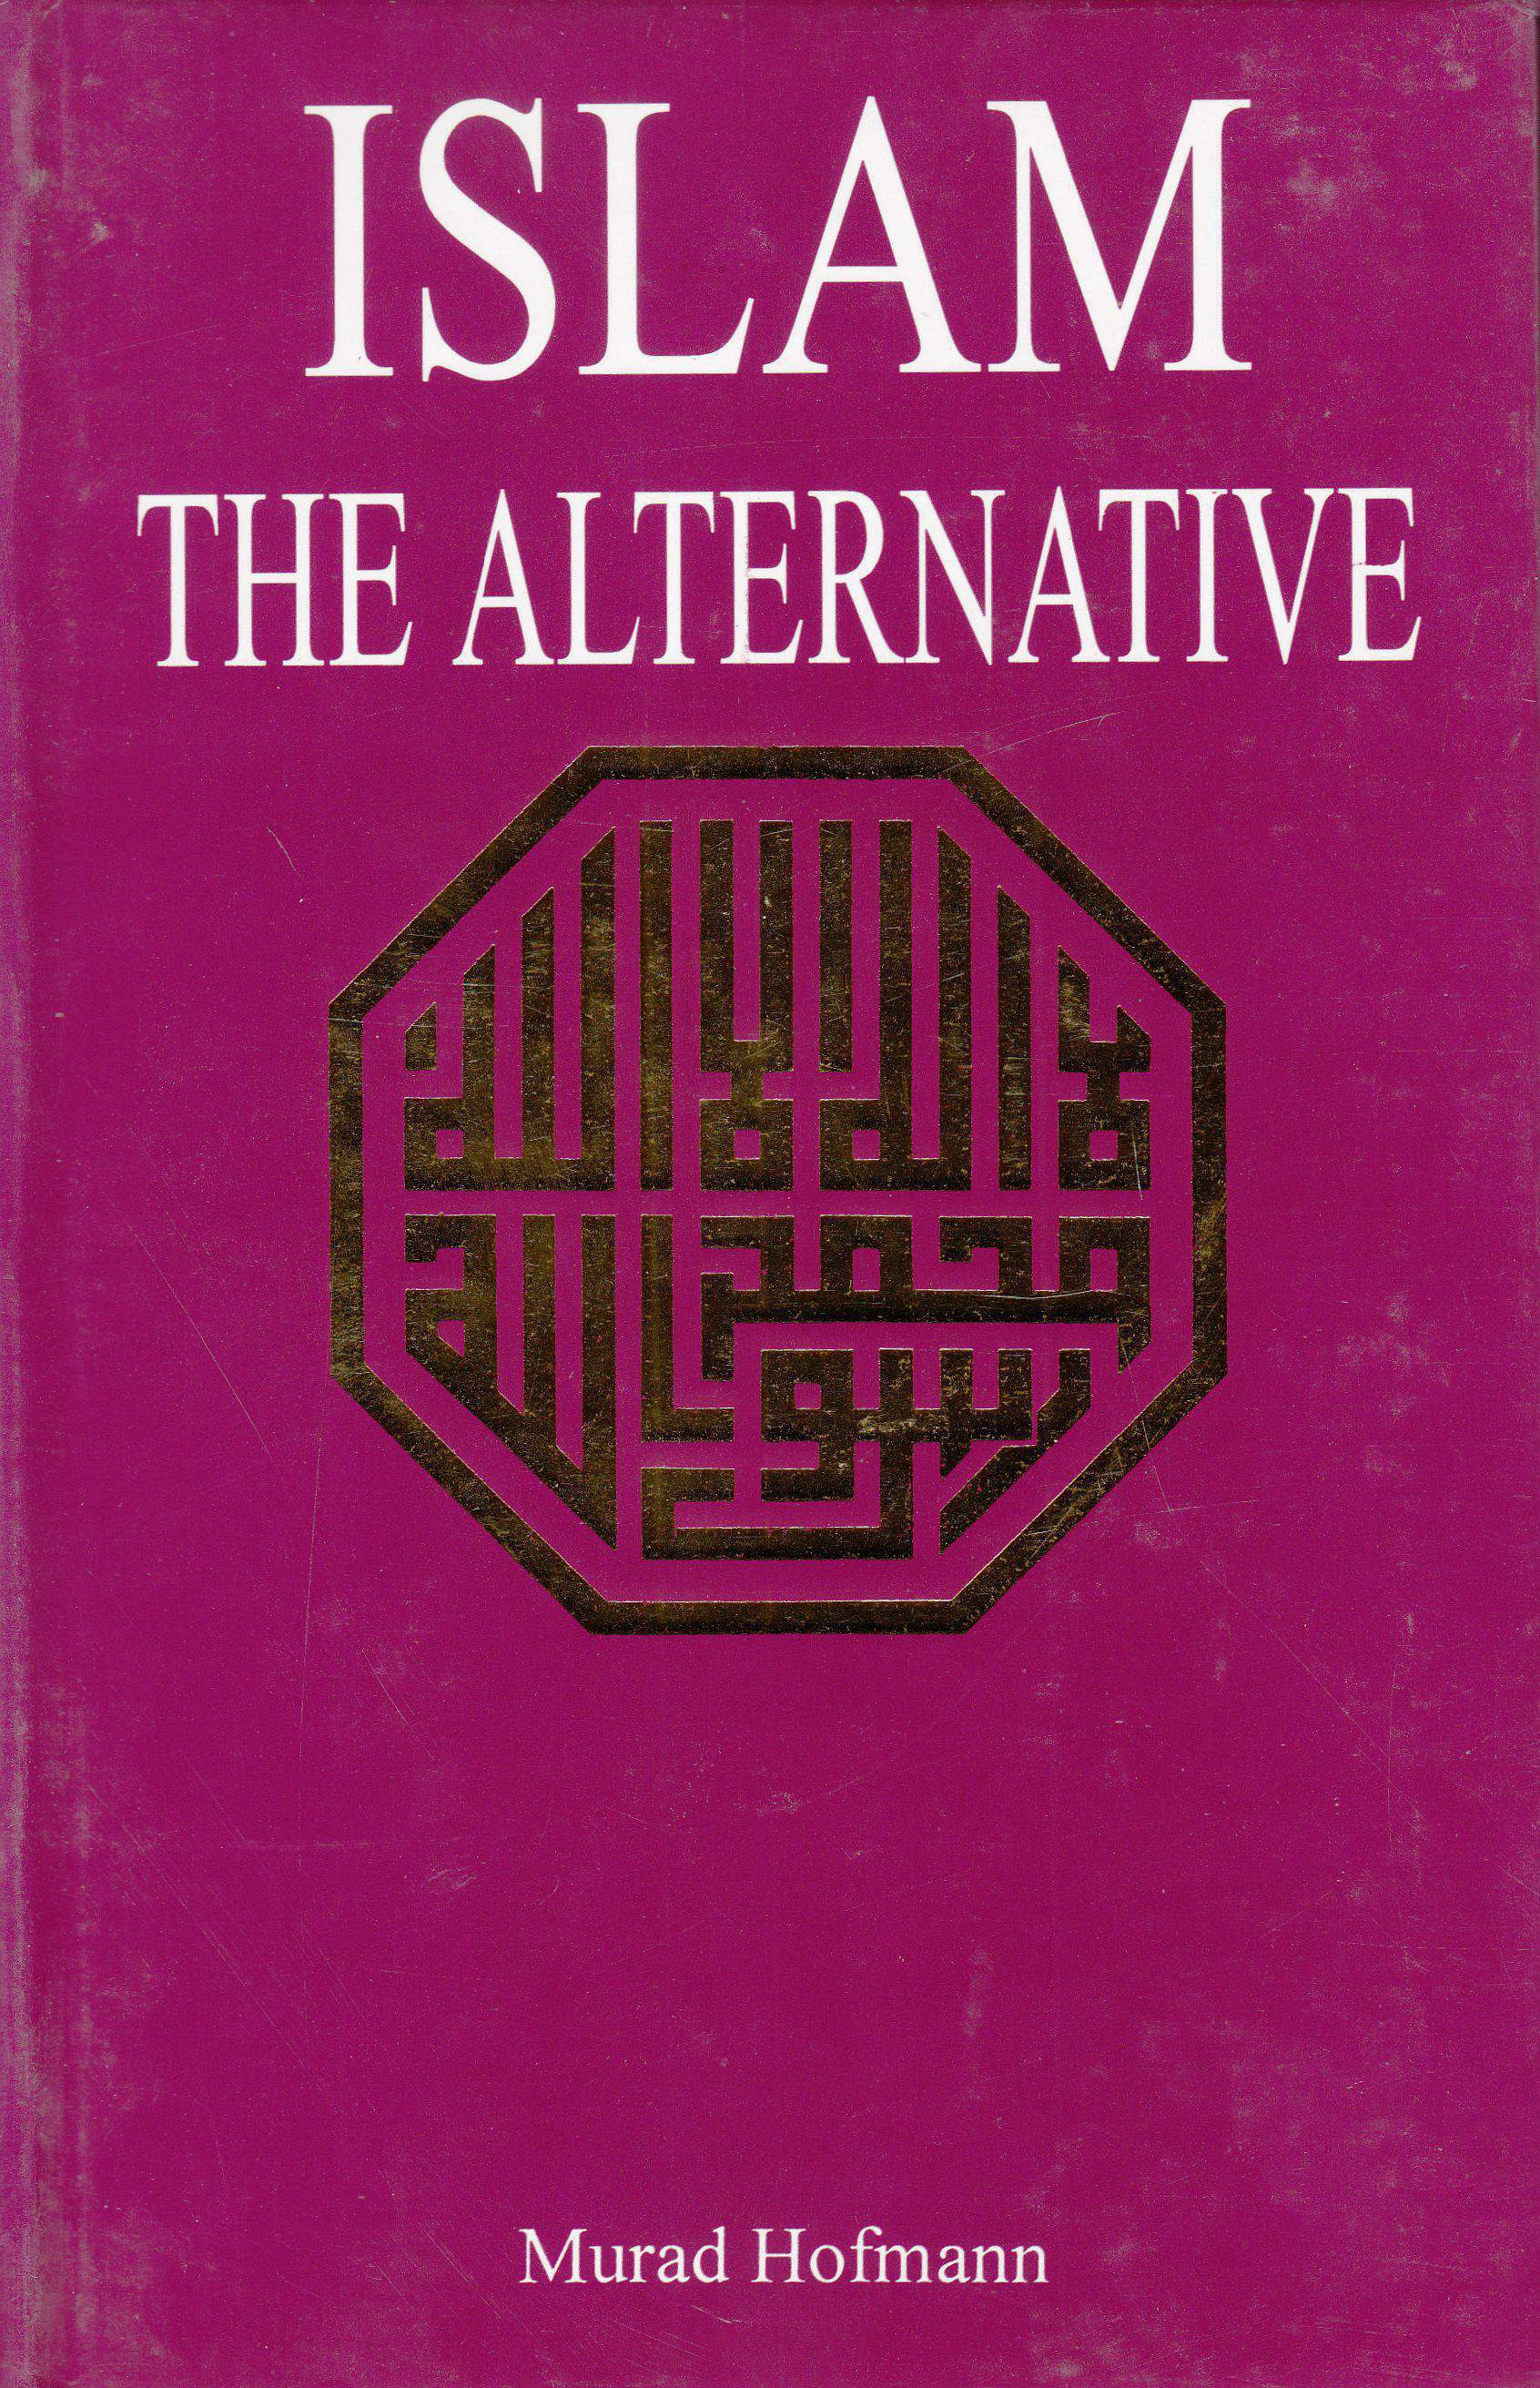 Islam The Alternative